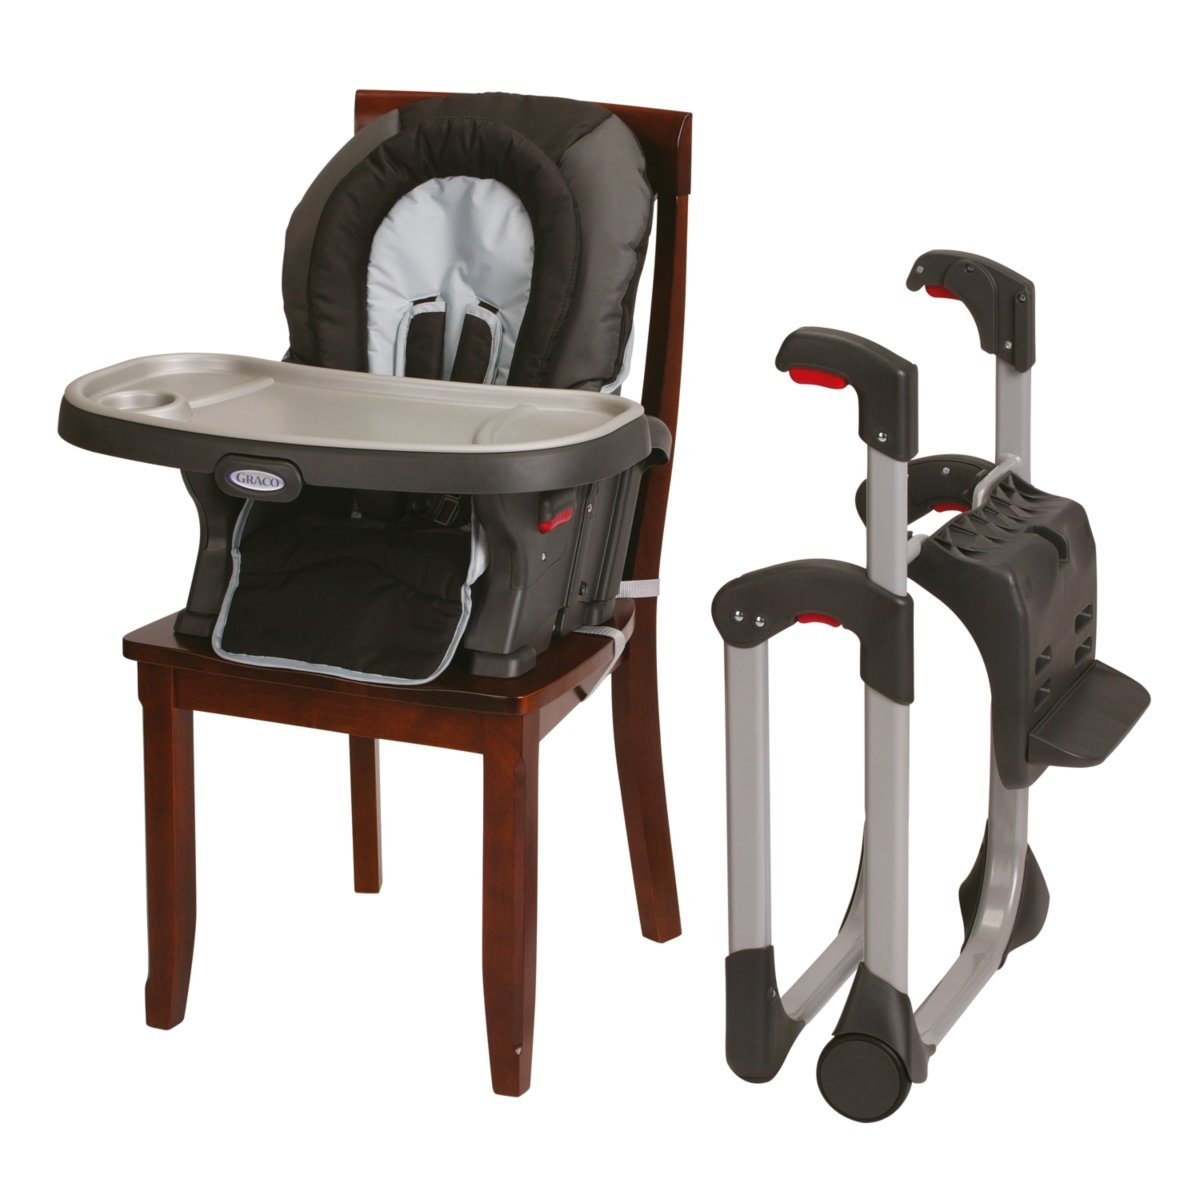 graco duodiner lx 3 in 1 highchair instructions salon reception chairs baby high chair metropolis